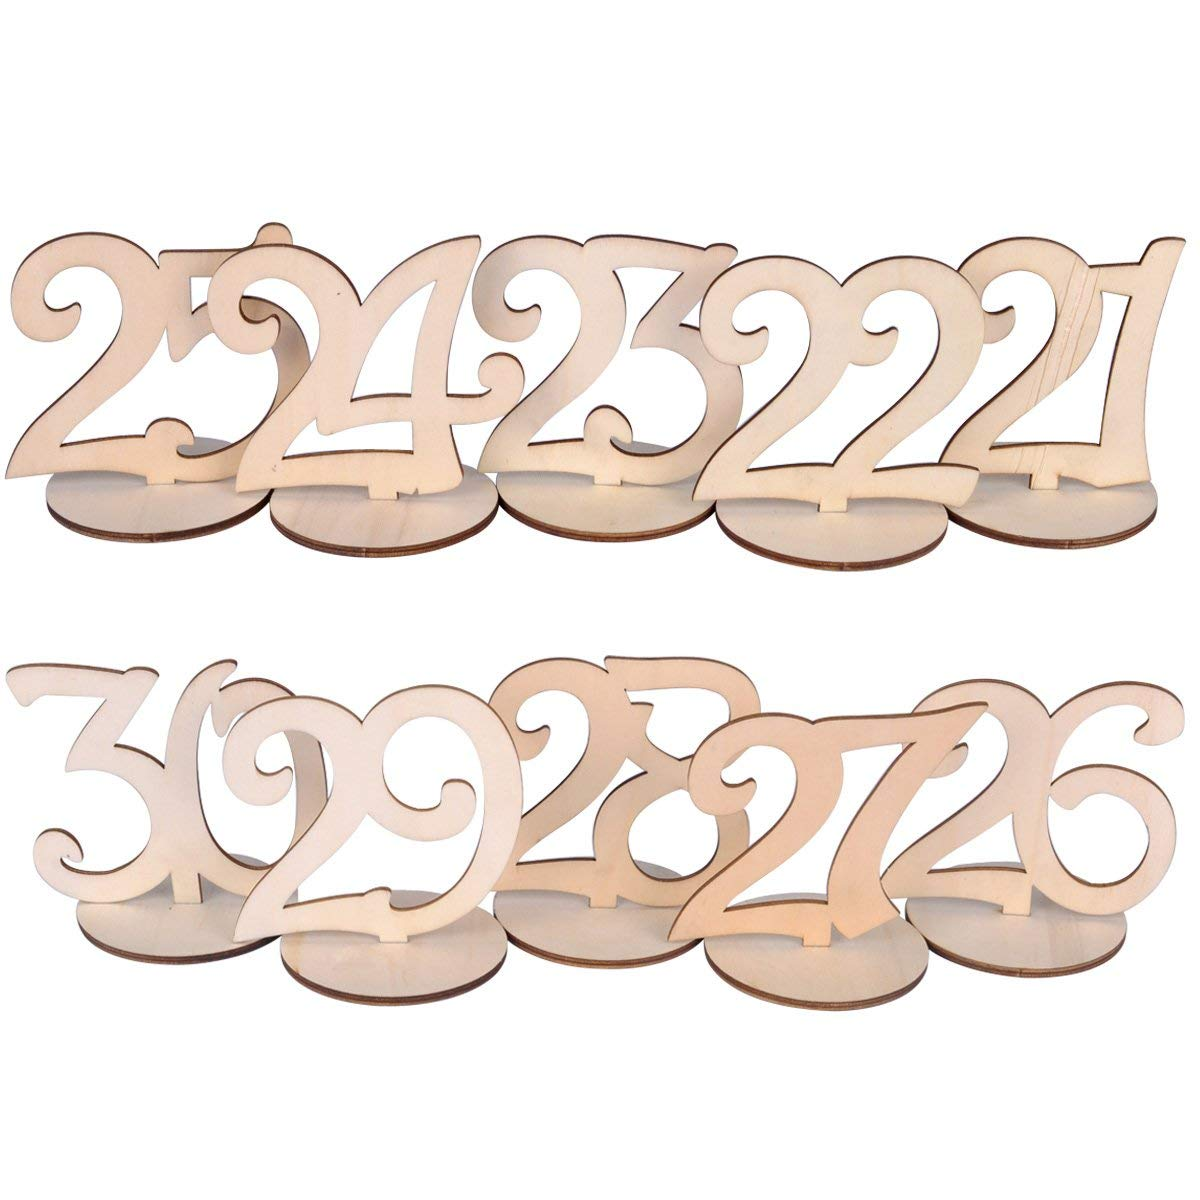 Table Numbers Wedding.Ezakka Wedding Table Numbers 21 30 Wood Wooden With Holder Base For Wedding Party Home Decoration Vintage Birthday Event Banquet Anniversary Decor